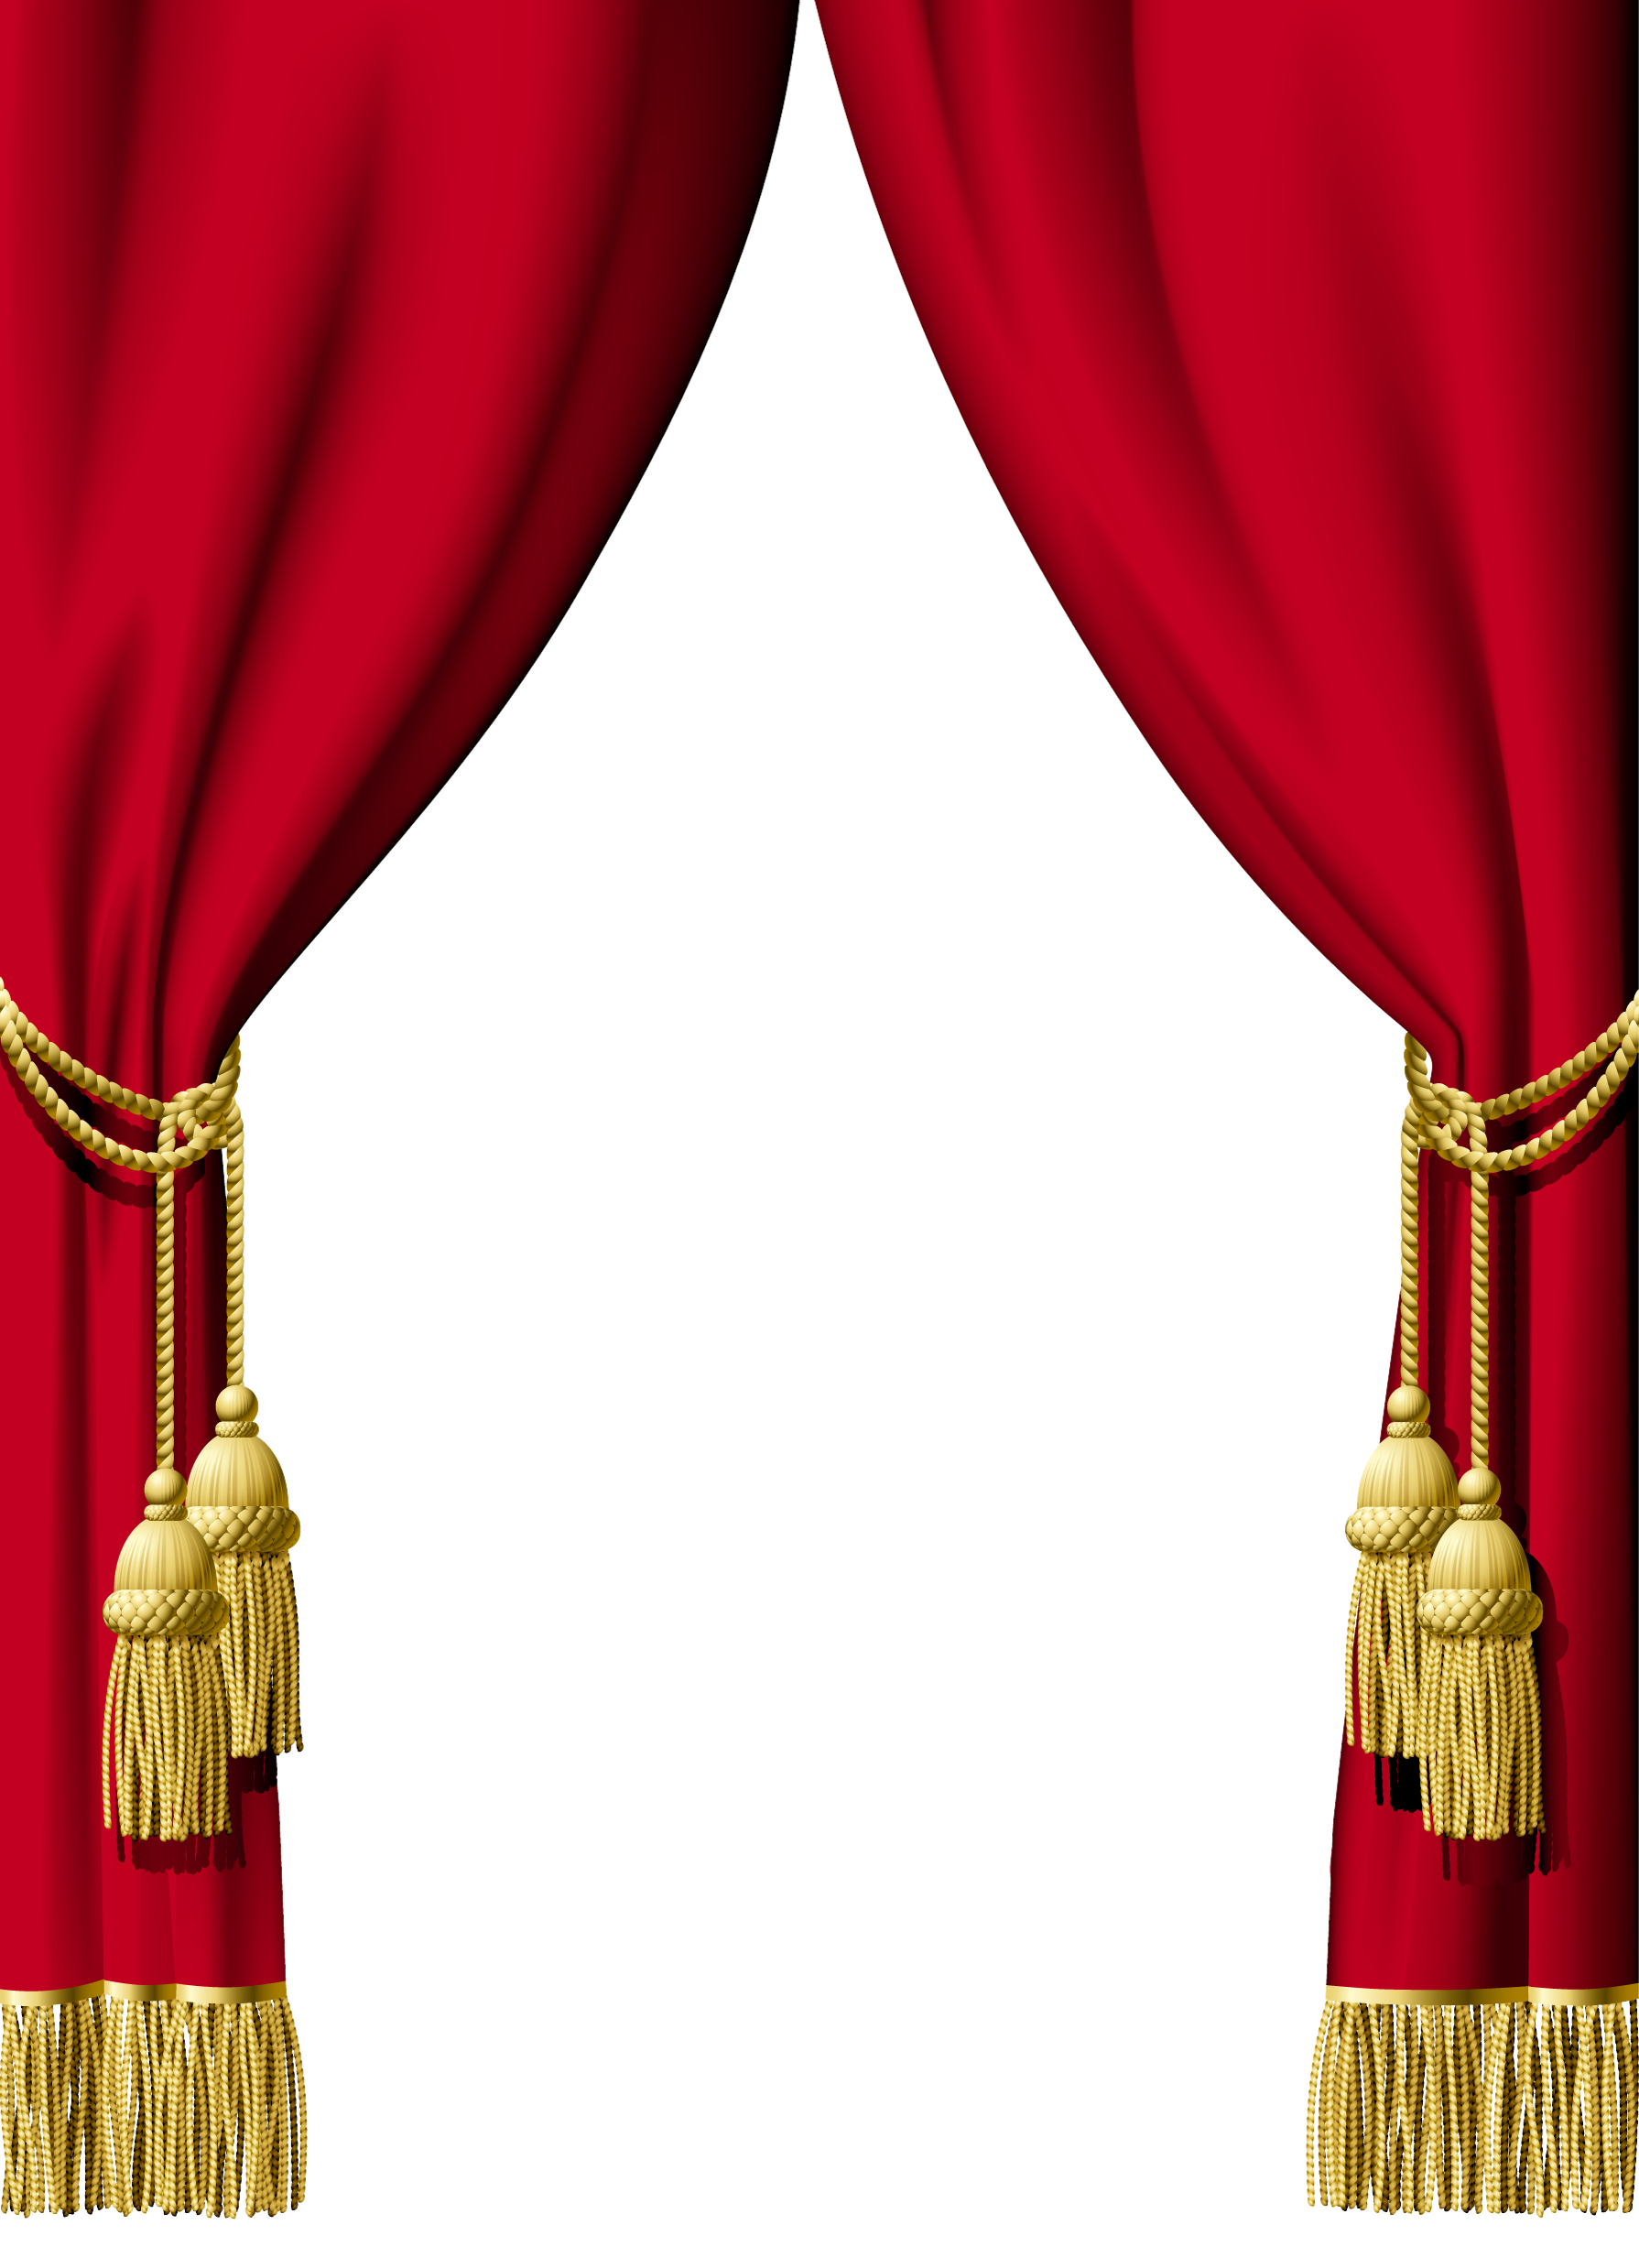 Red Curtain Png Transparent Images  350